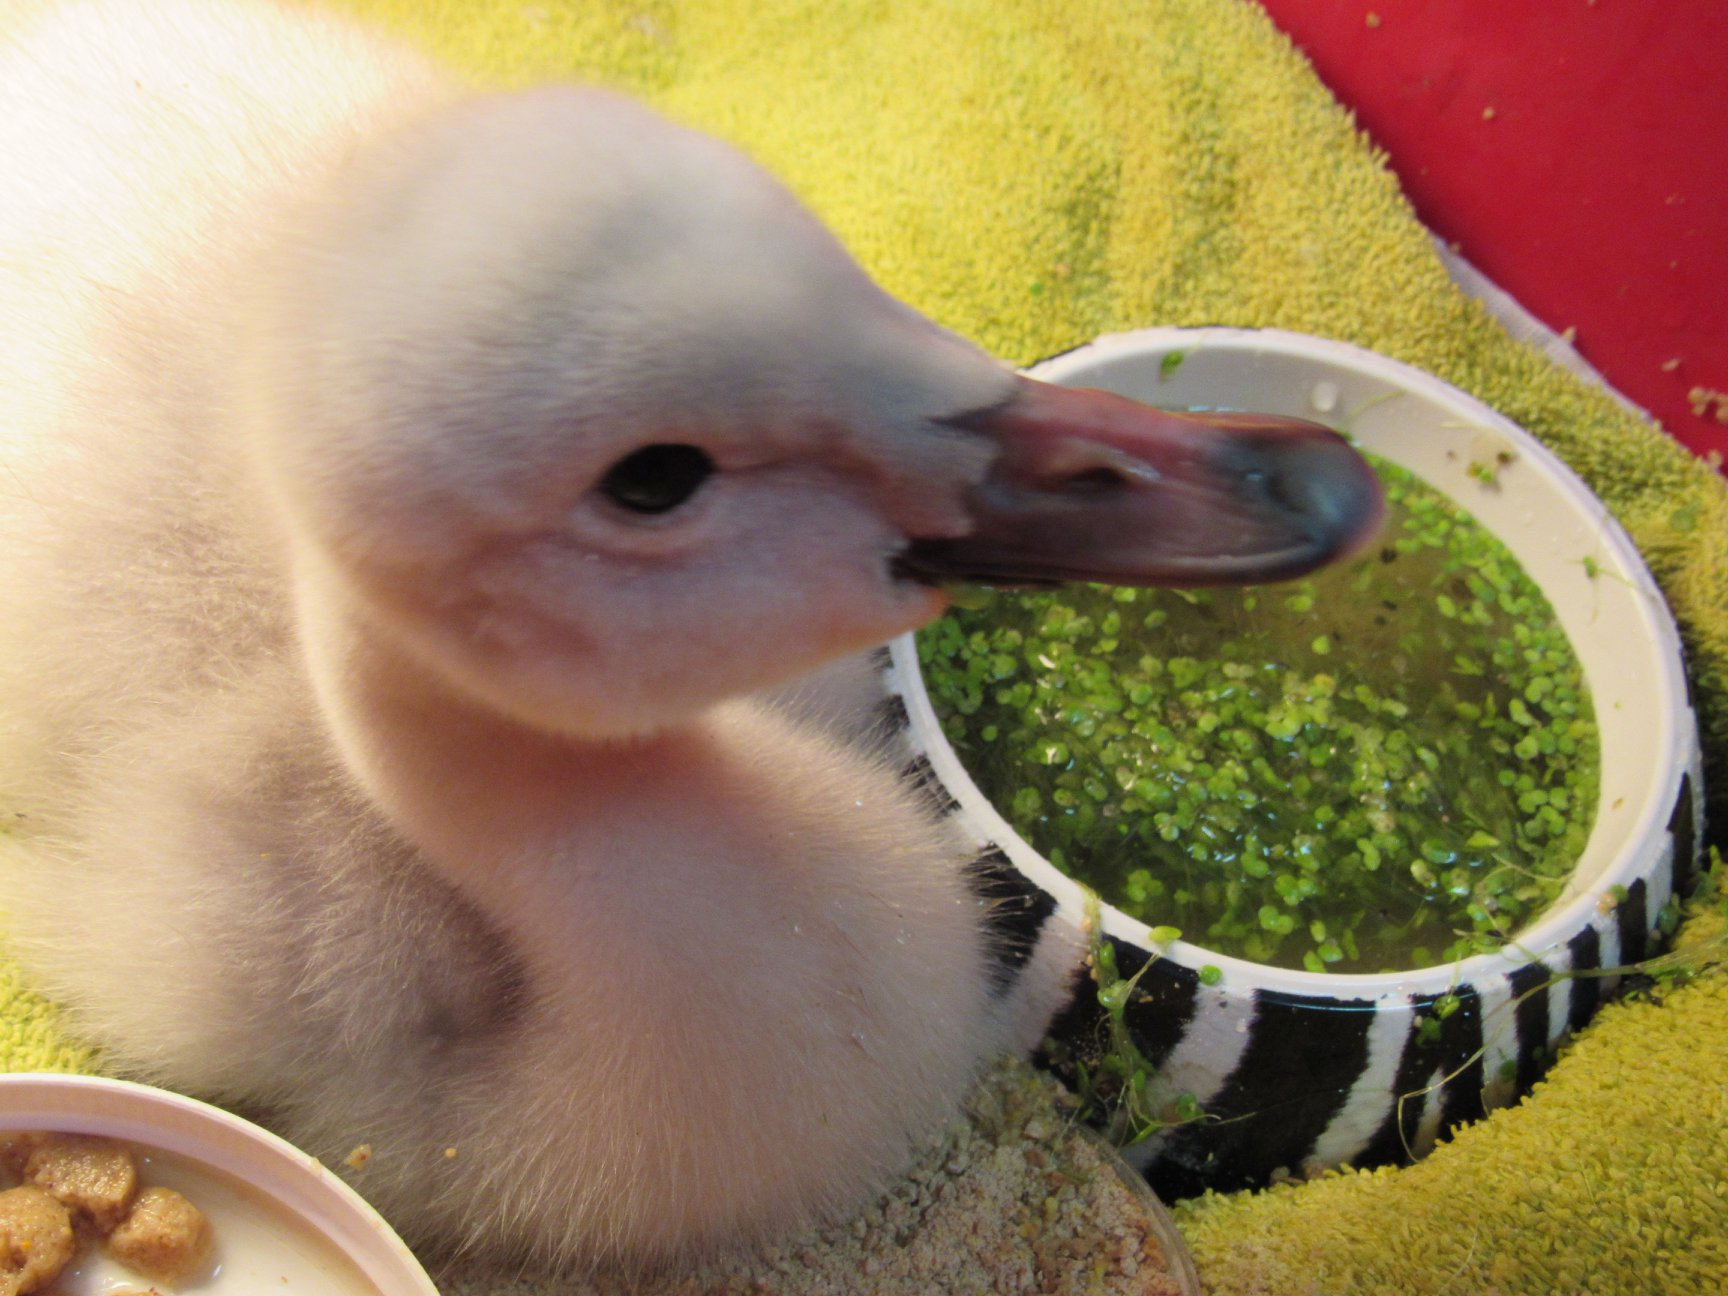 Under a brooder with the essentials including duck weed and mealworm mash. This is a Trumpeter Swan cygnet.